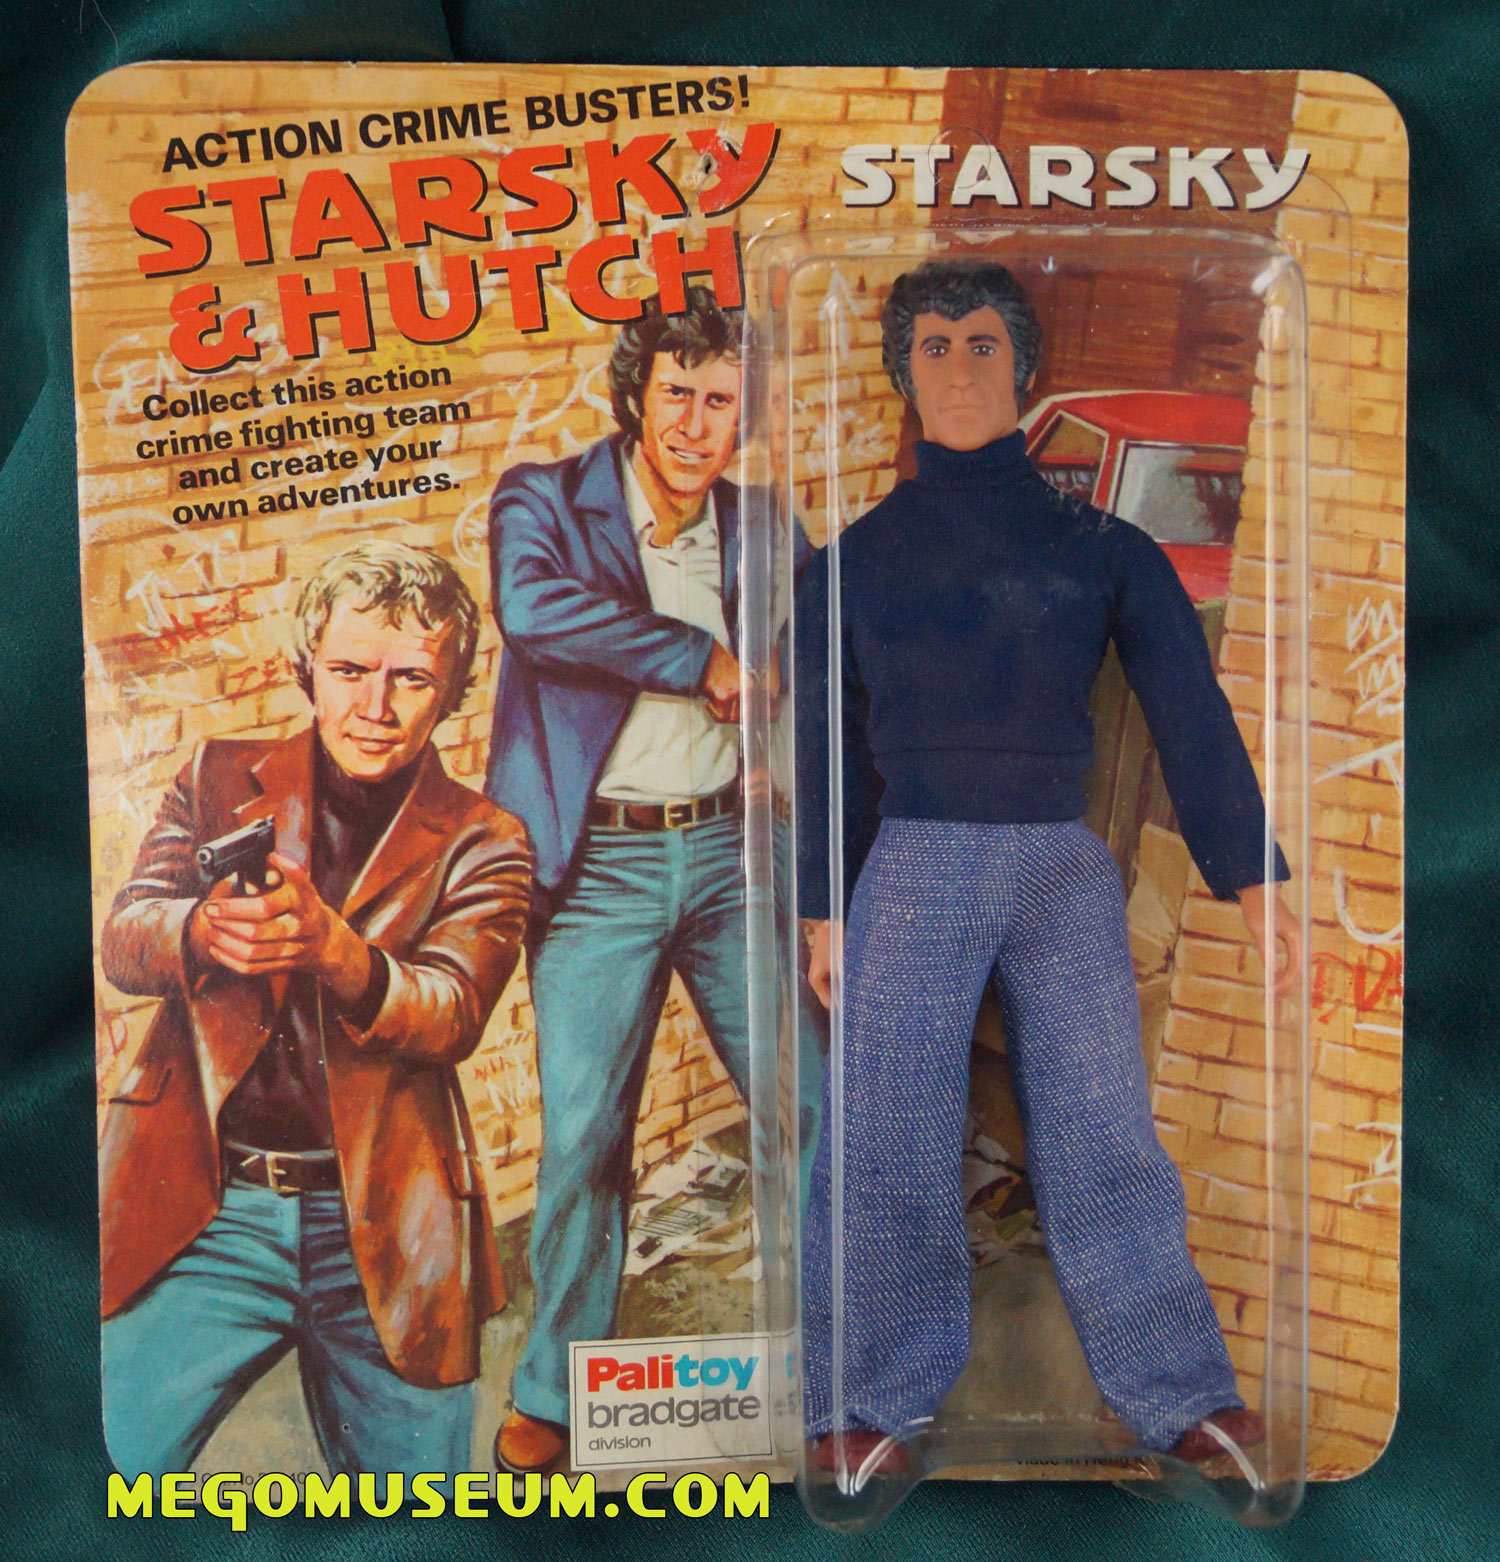 Palitoy Bradgate Carded Starsky Figure from the UK.